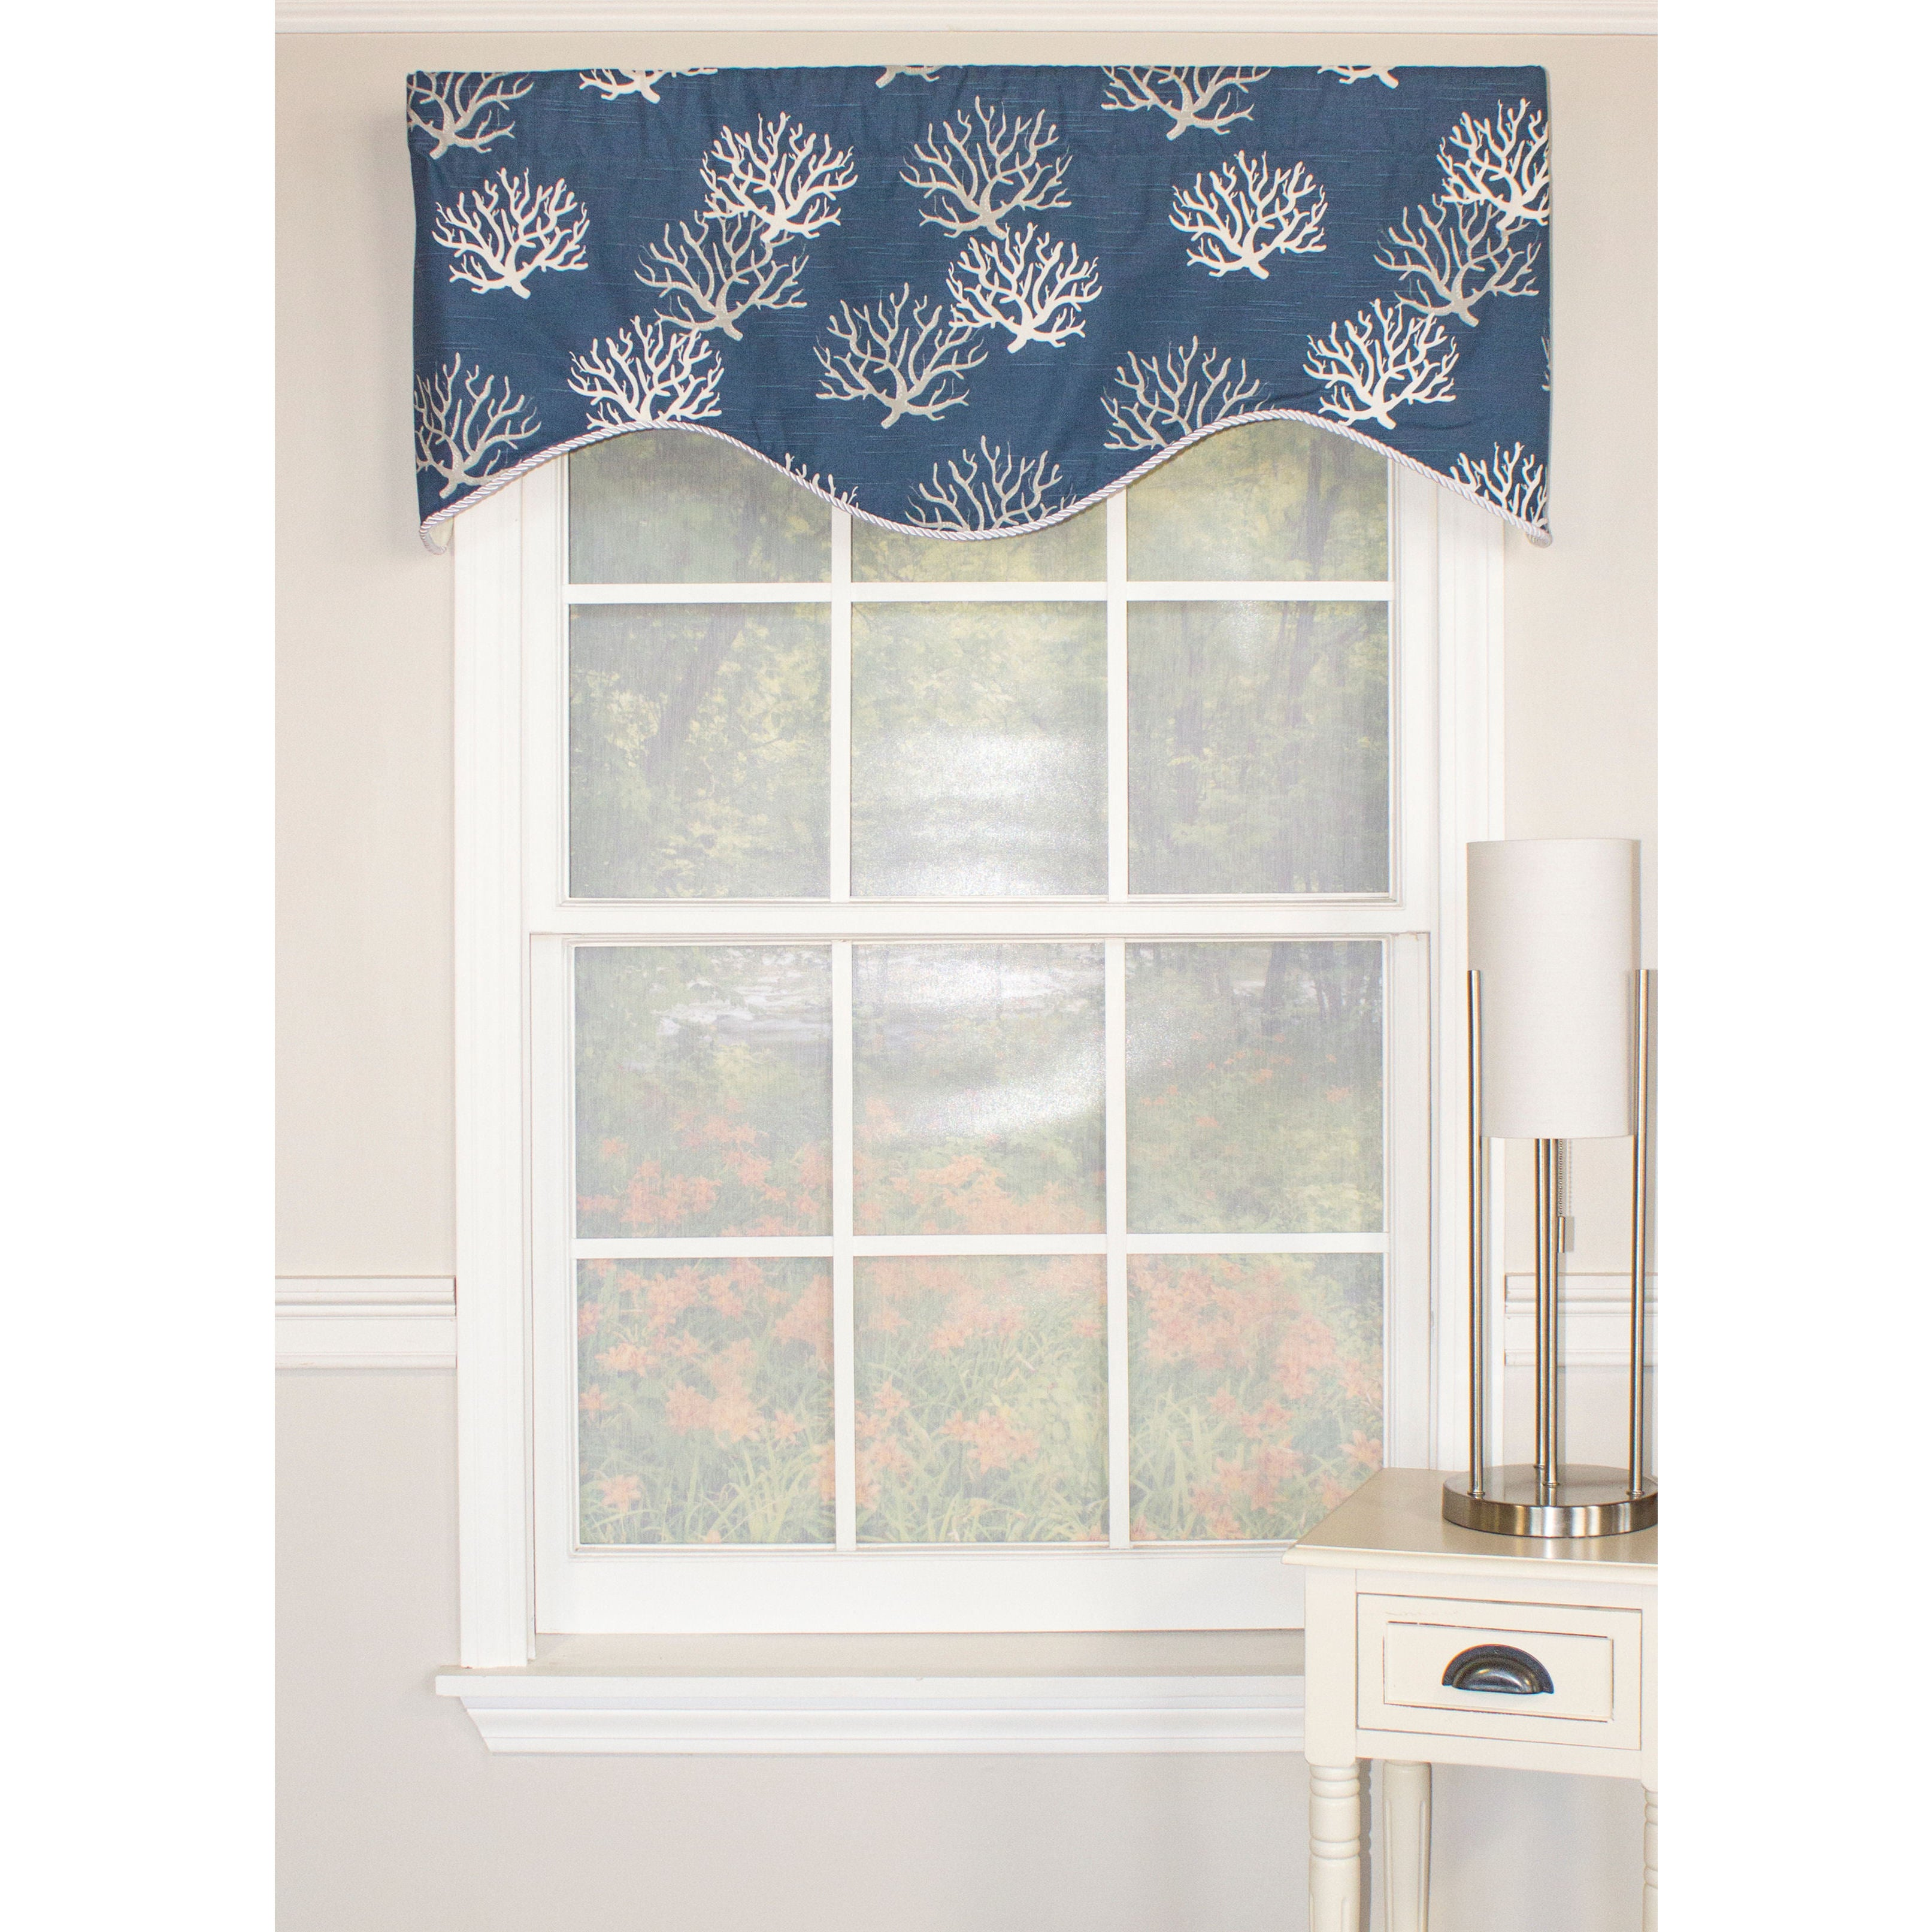 bring in of home image minimalist decorations cornice your and design idea elegance valance colors